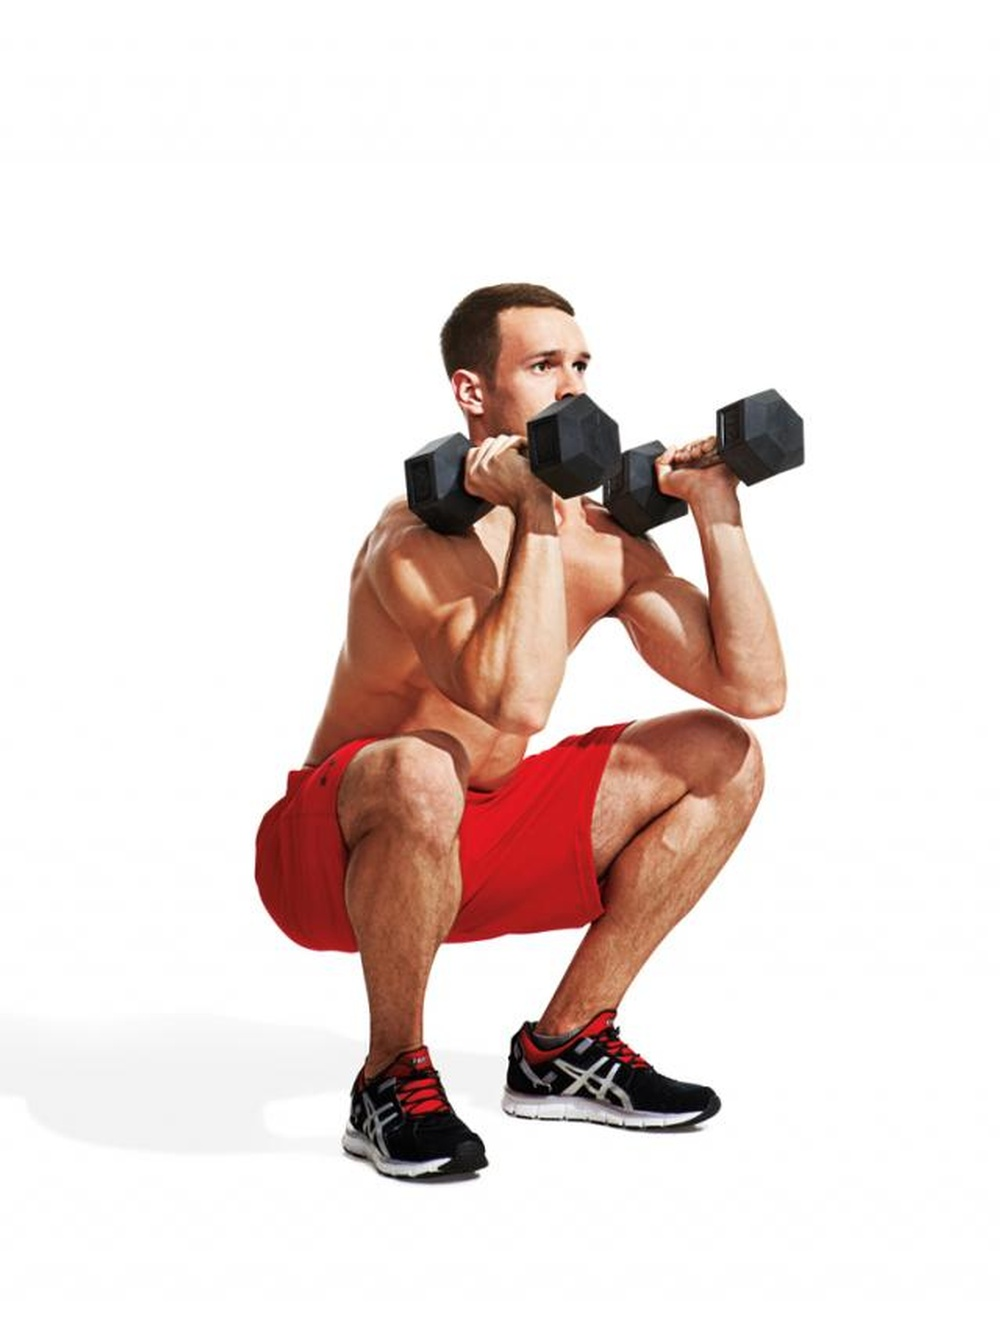 dumbbell-squat-dumbbells-kettlebells-2-exercise_potrait_step_image.jpg